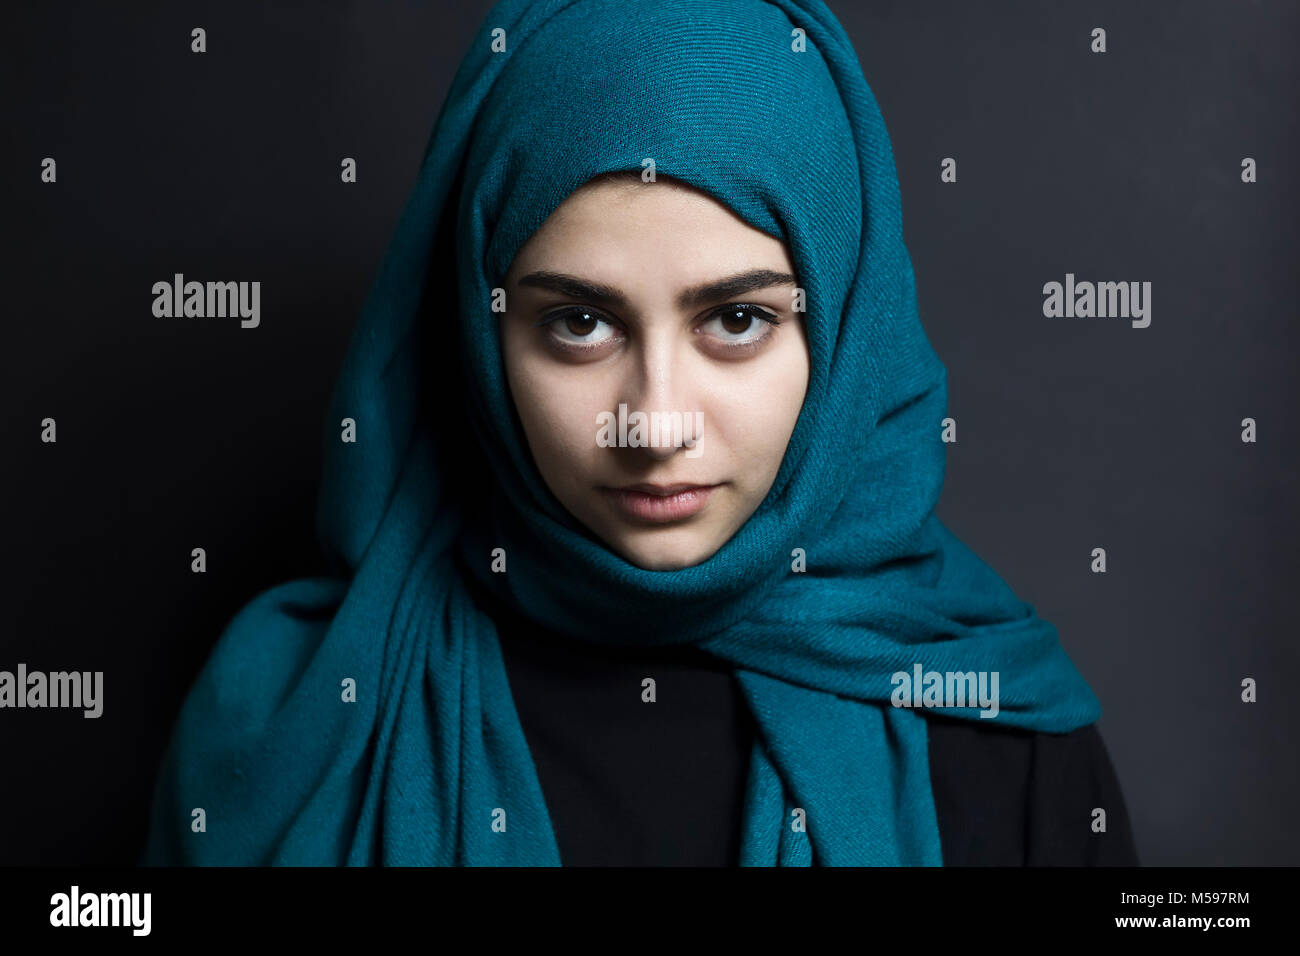 A beautiful muslim girl with eyes on a black background arab woman with beautiful eyes